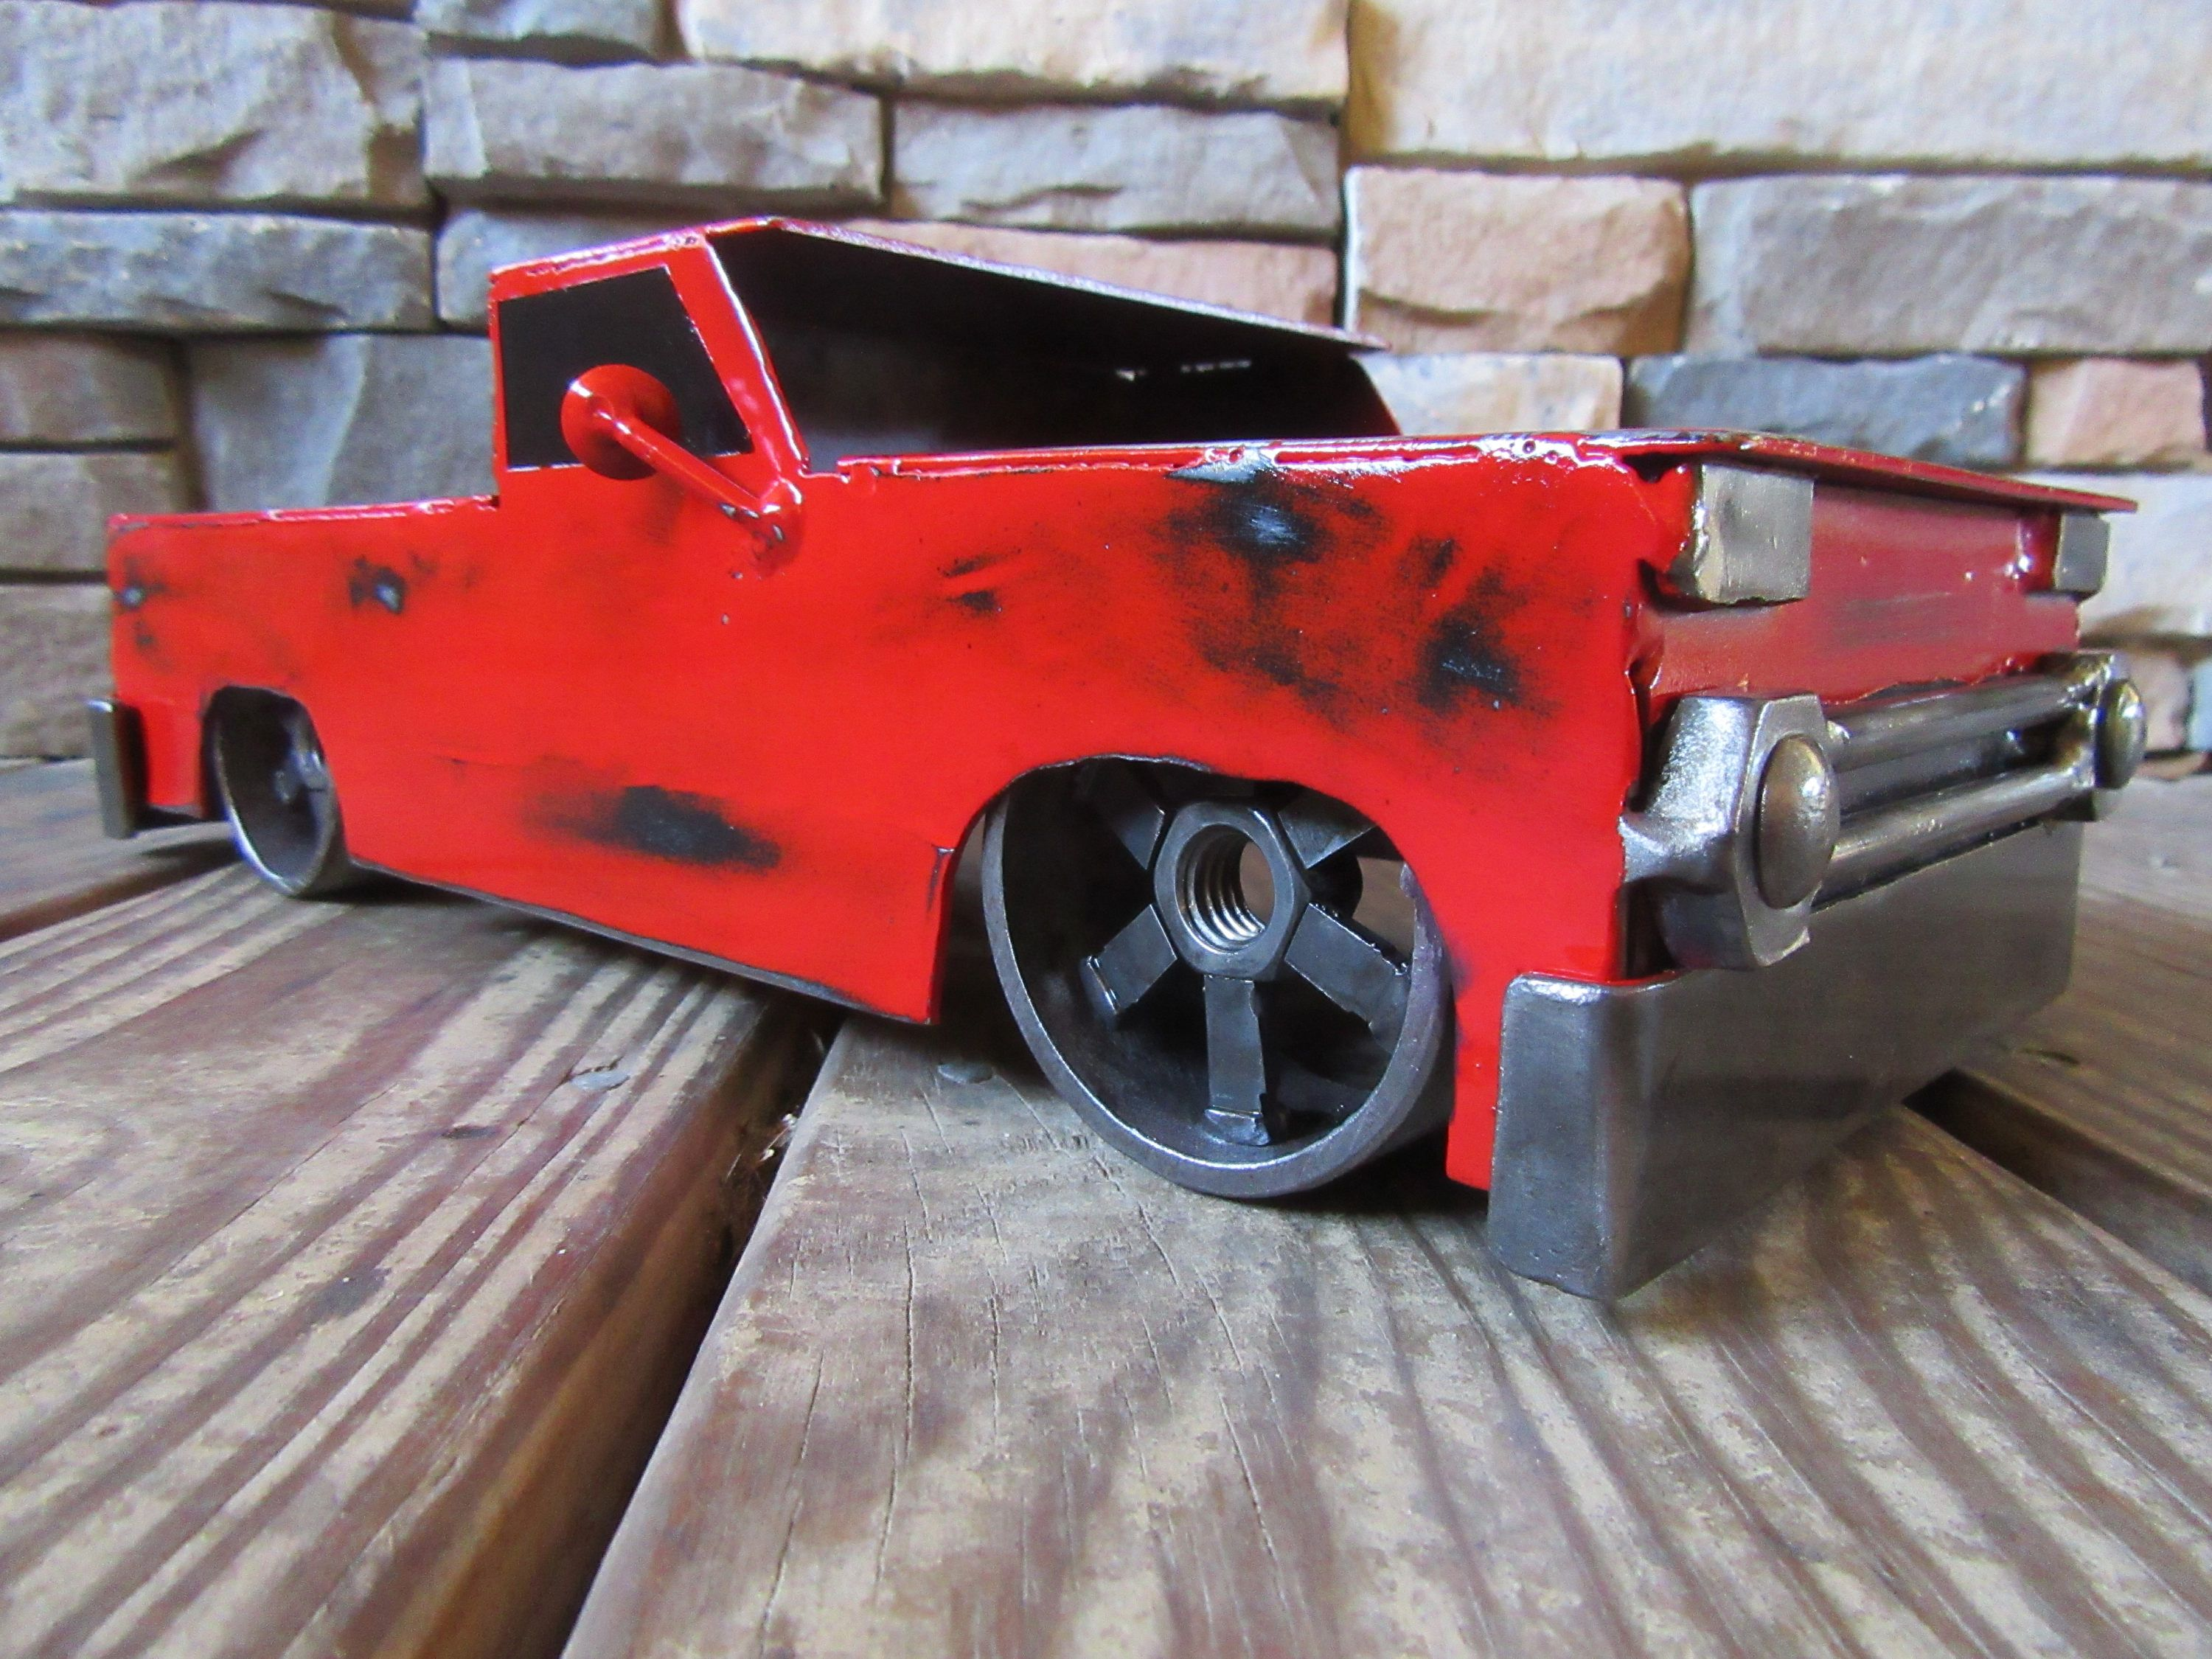 1966 Steel Chevy Truck Handmade Metal Truck Lowrider Welded Art Red Vintage  Truck Mancave Home Decor Gift Hot Rod By MetalDisorder On Etsy